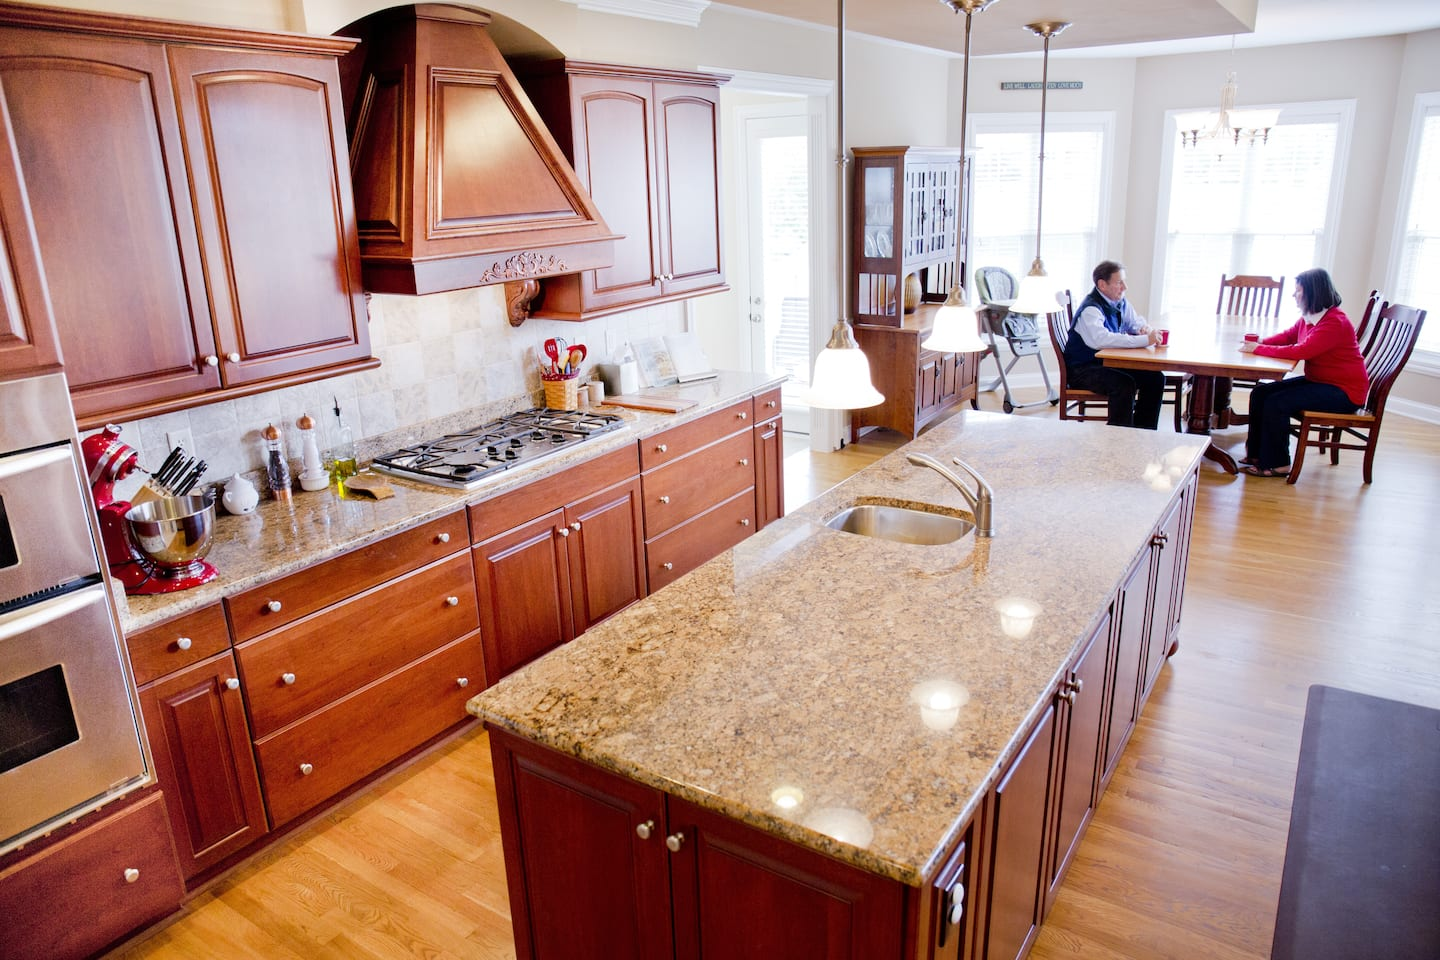 Updated kitchen helps sell home more quickly (Photo by )